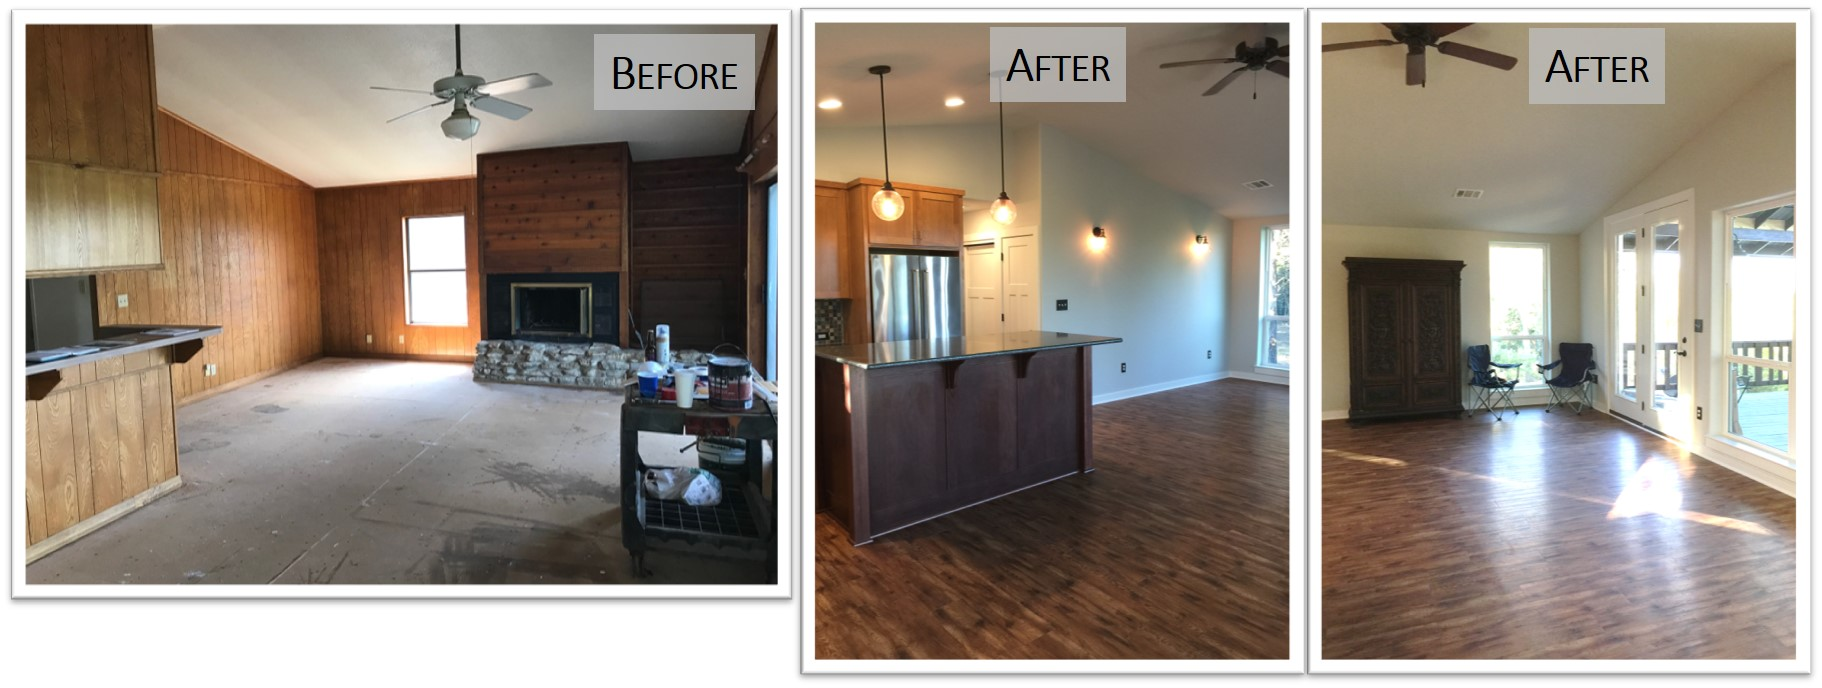 910 PLL, Interior LR, Before and After, Bear Creek Homes.jpg